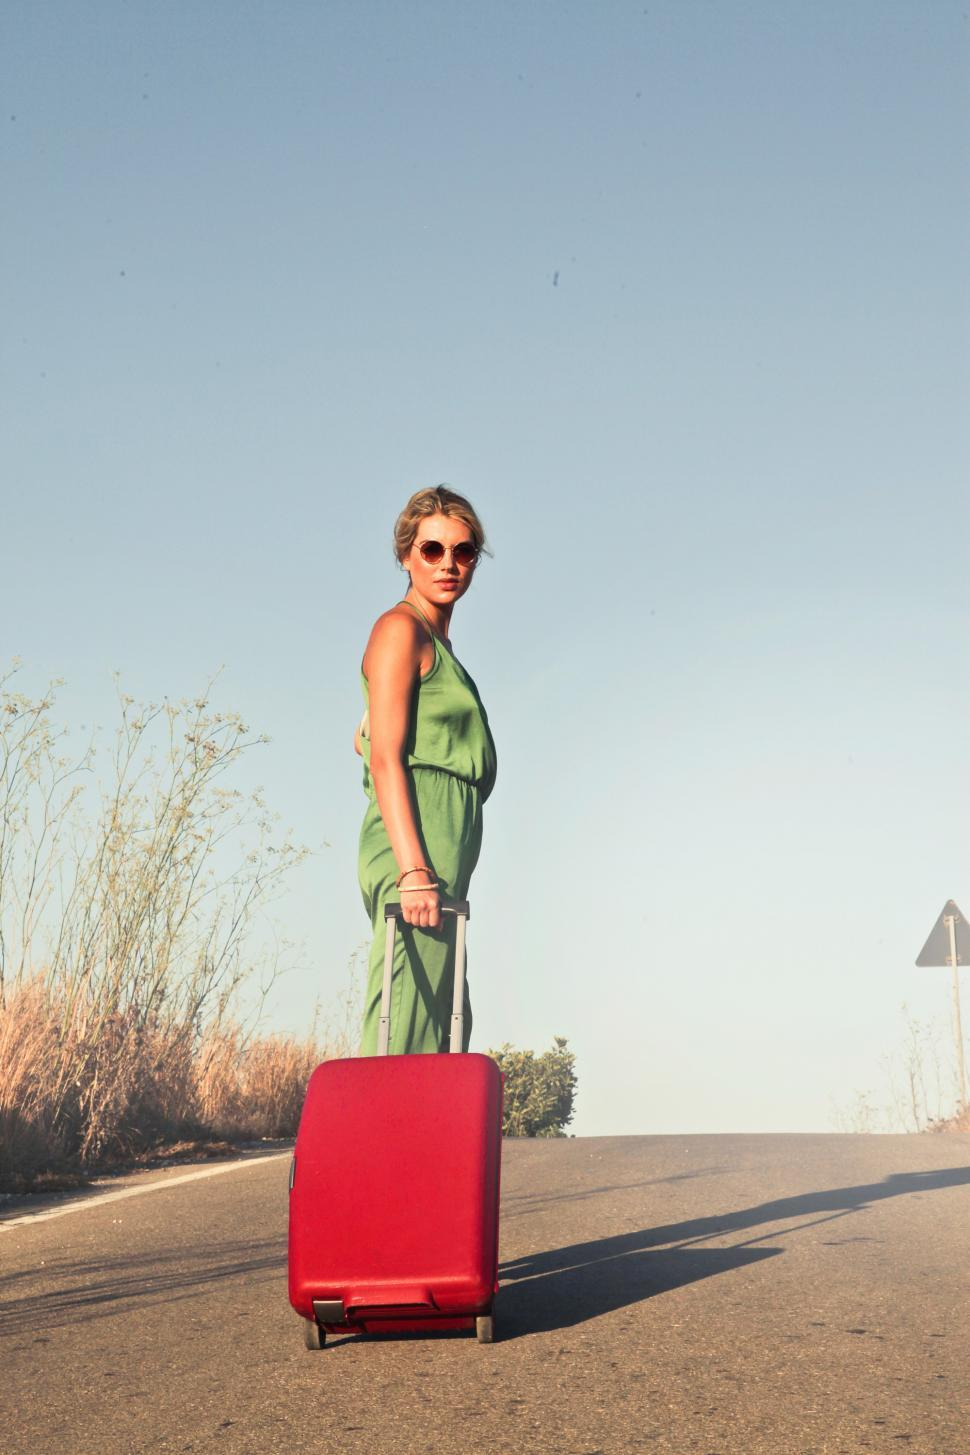 Download Free Stock HD Photo of A young blonde woman posing with red luggage trolley Bag Online